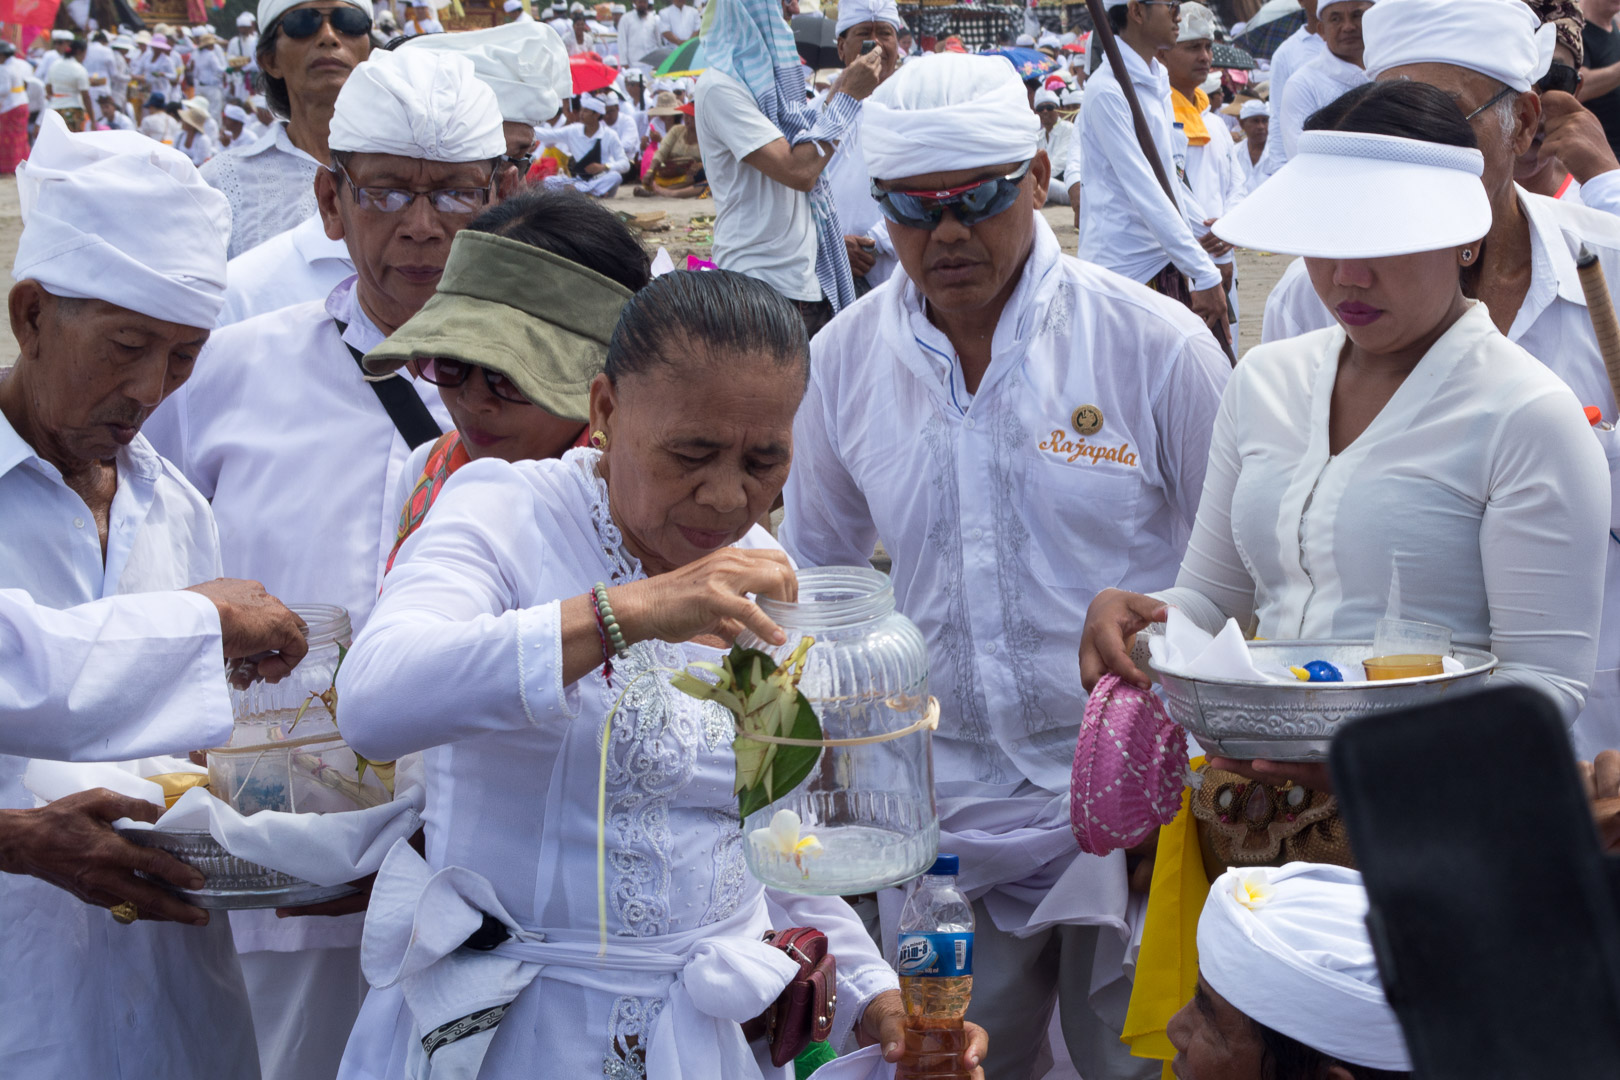 A woman with ocean water splashes everybody and shrine objects for purification